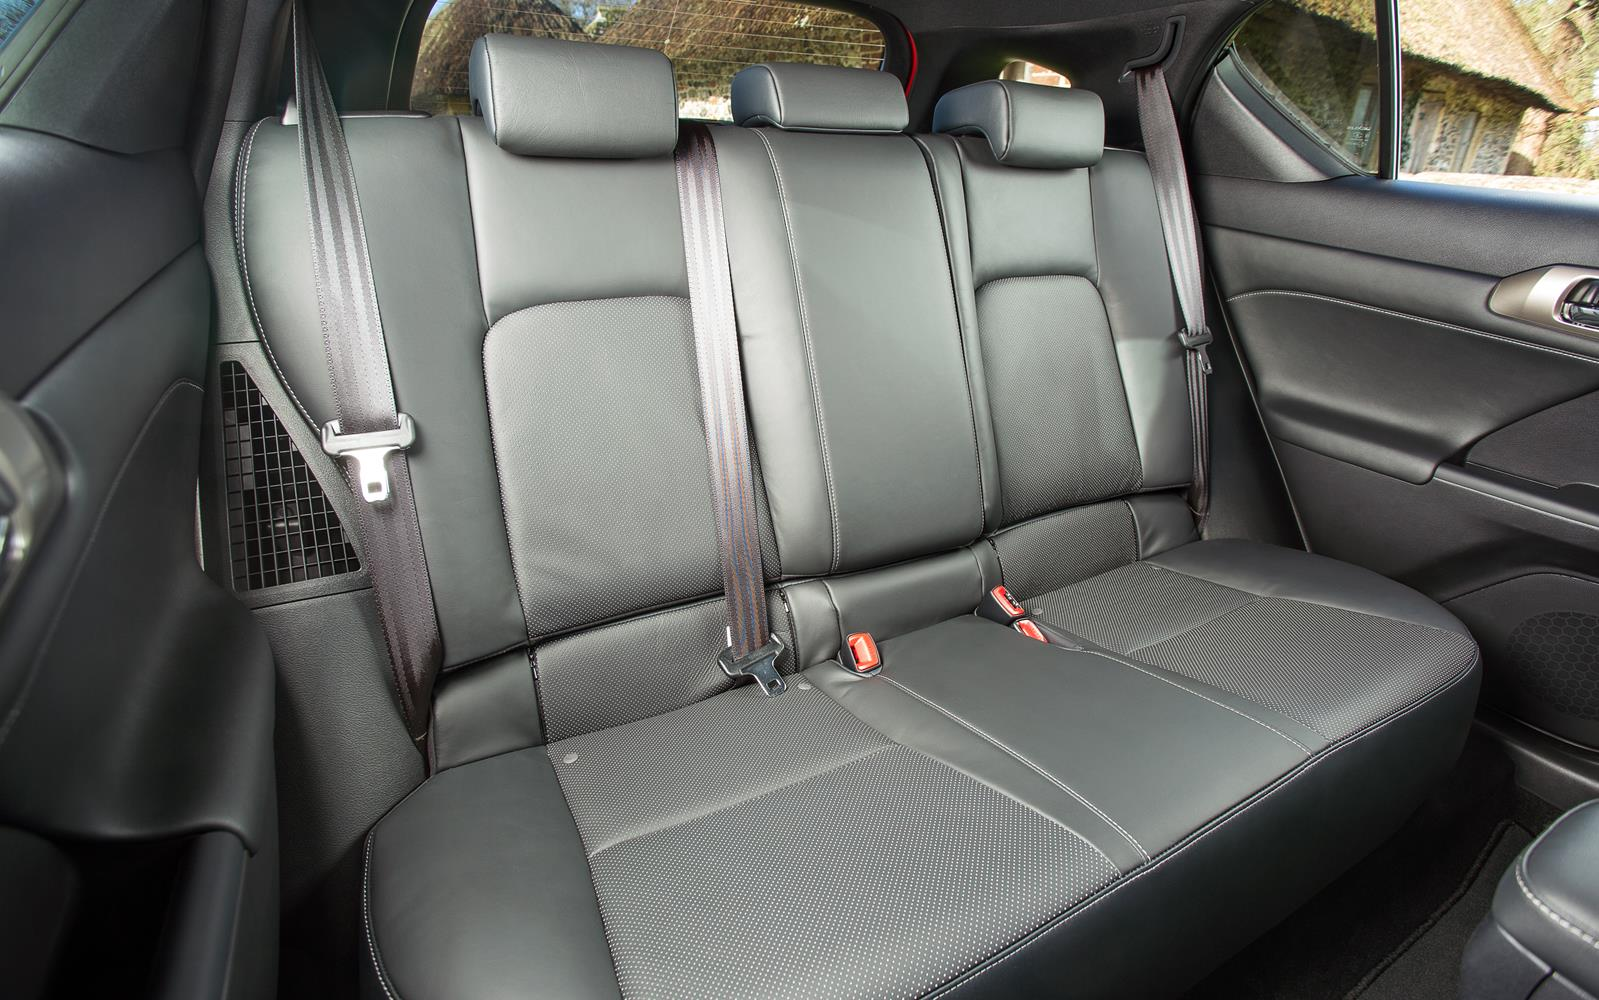 Lexus Ct 200h 2014 Rear Seats Frontseatdriver Co Uk